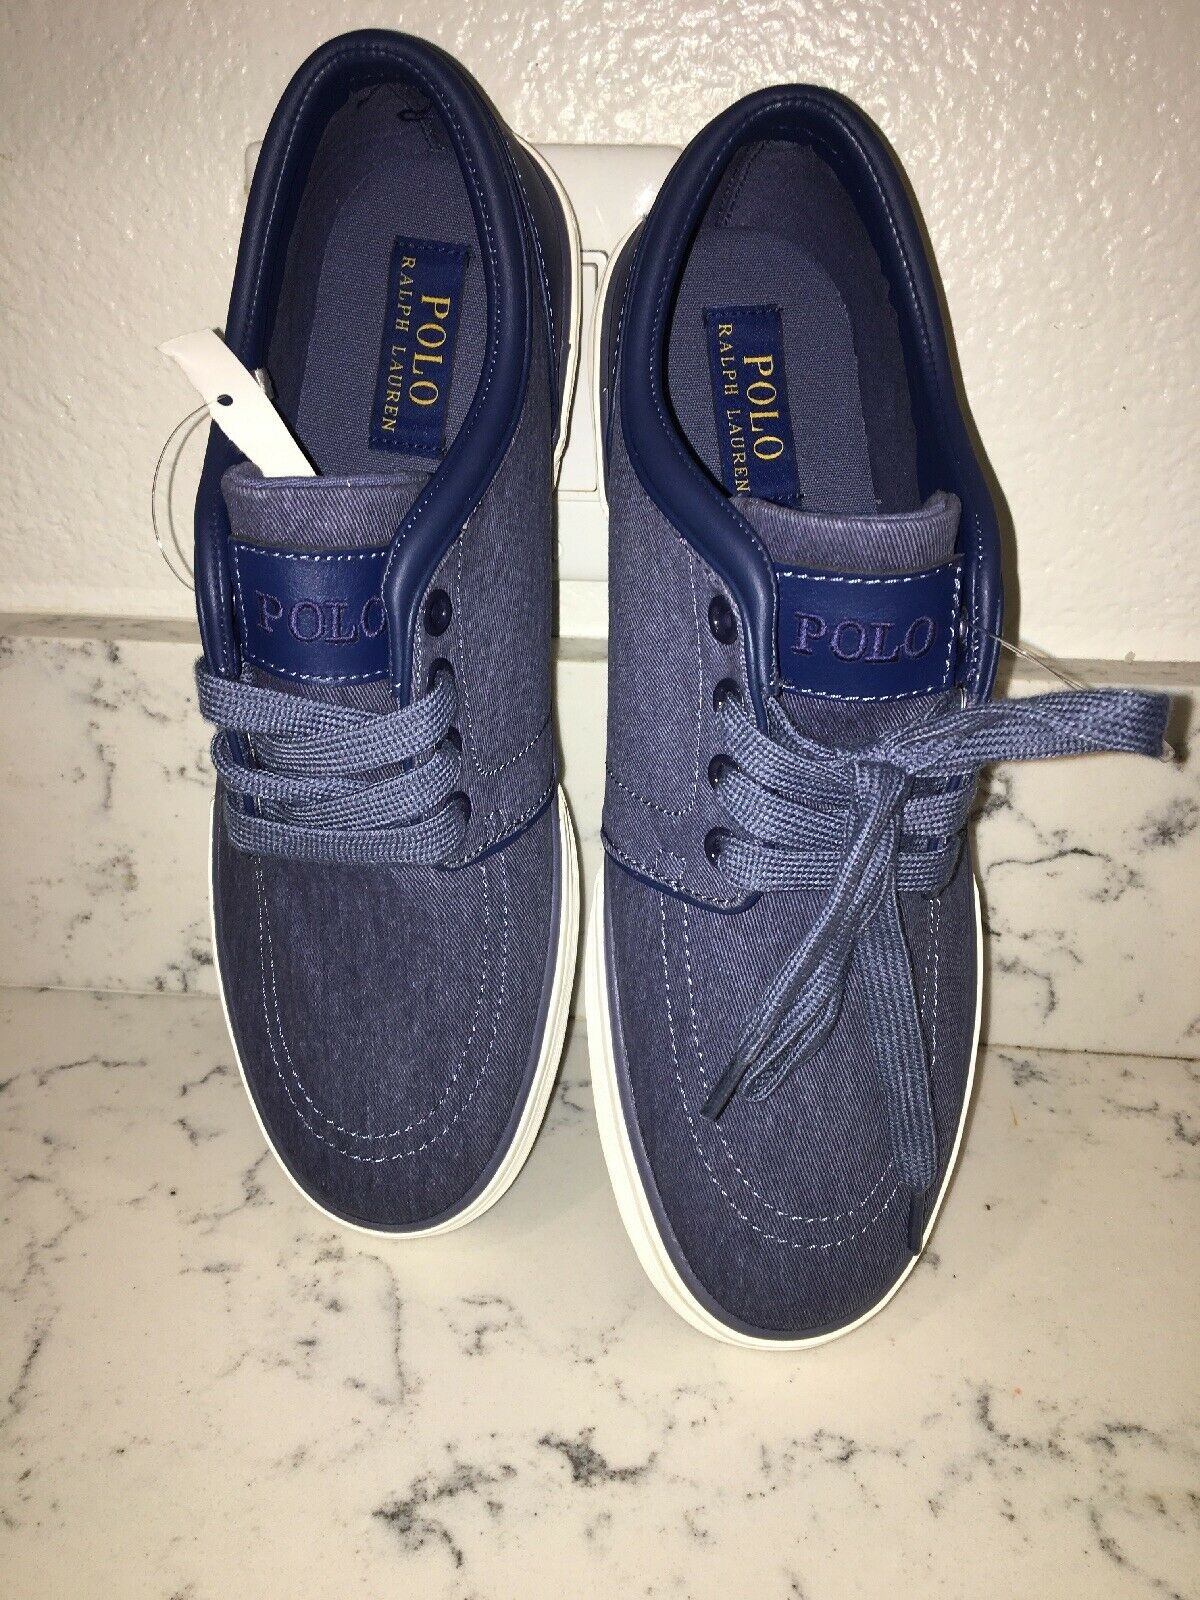 Polo Ralph Lauren  navy bluee canvas sneakers Mens casual shoes Size 8.5D